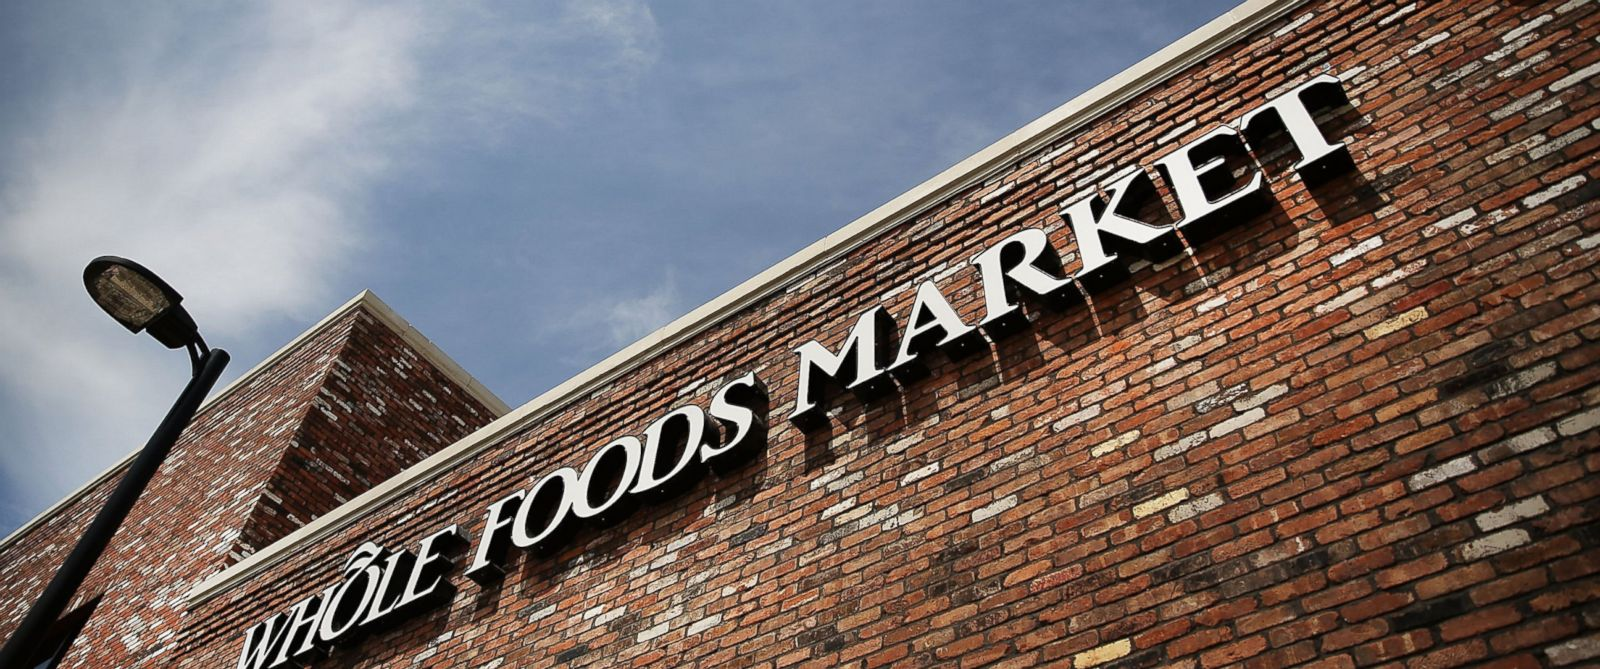 PHOTO: A sign for a Whole Foods Market is viewed in Brooklyn on May 7, 2014 in New York.